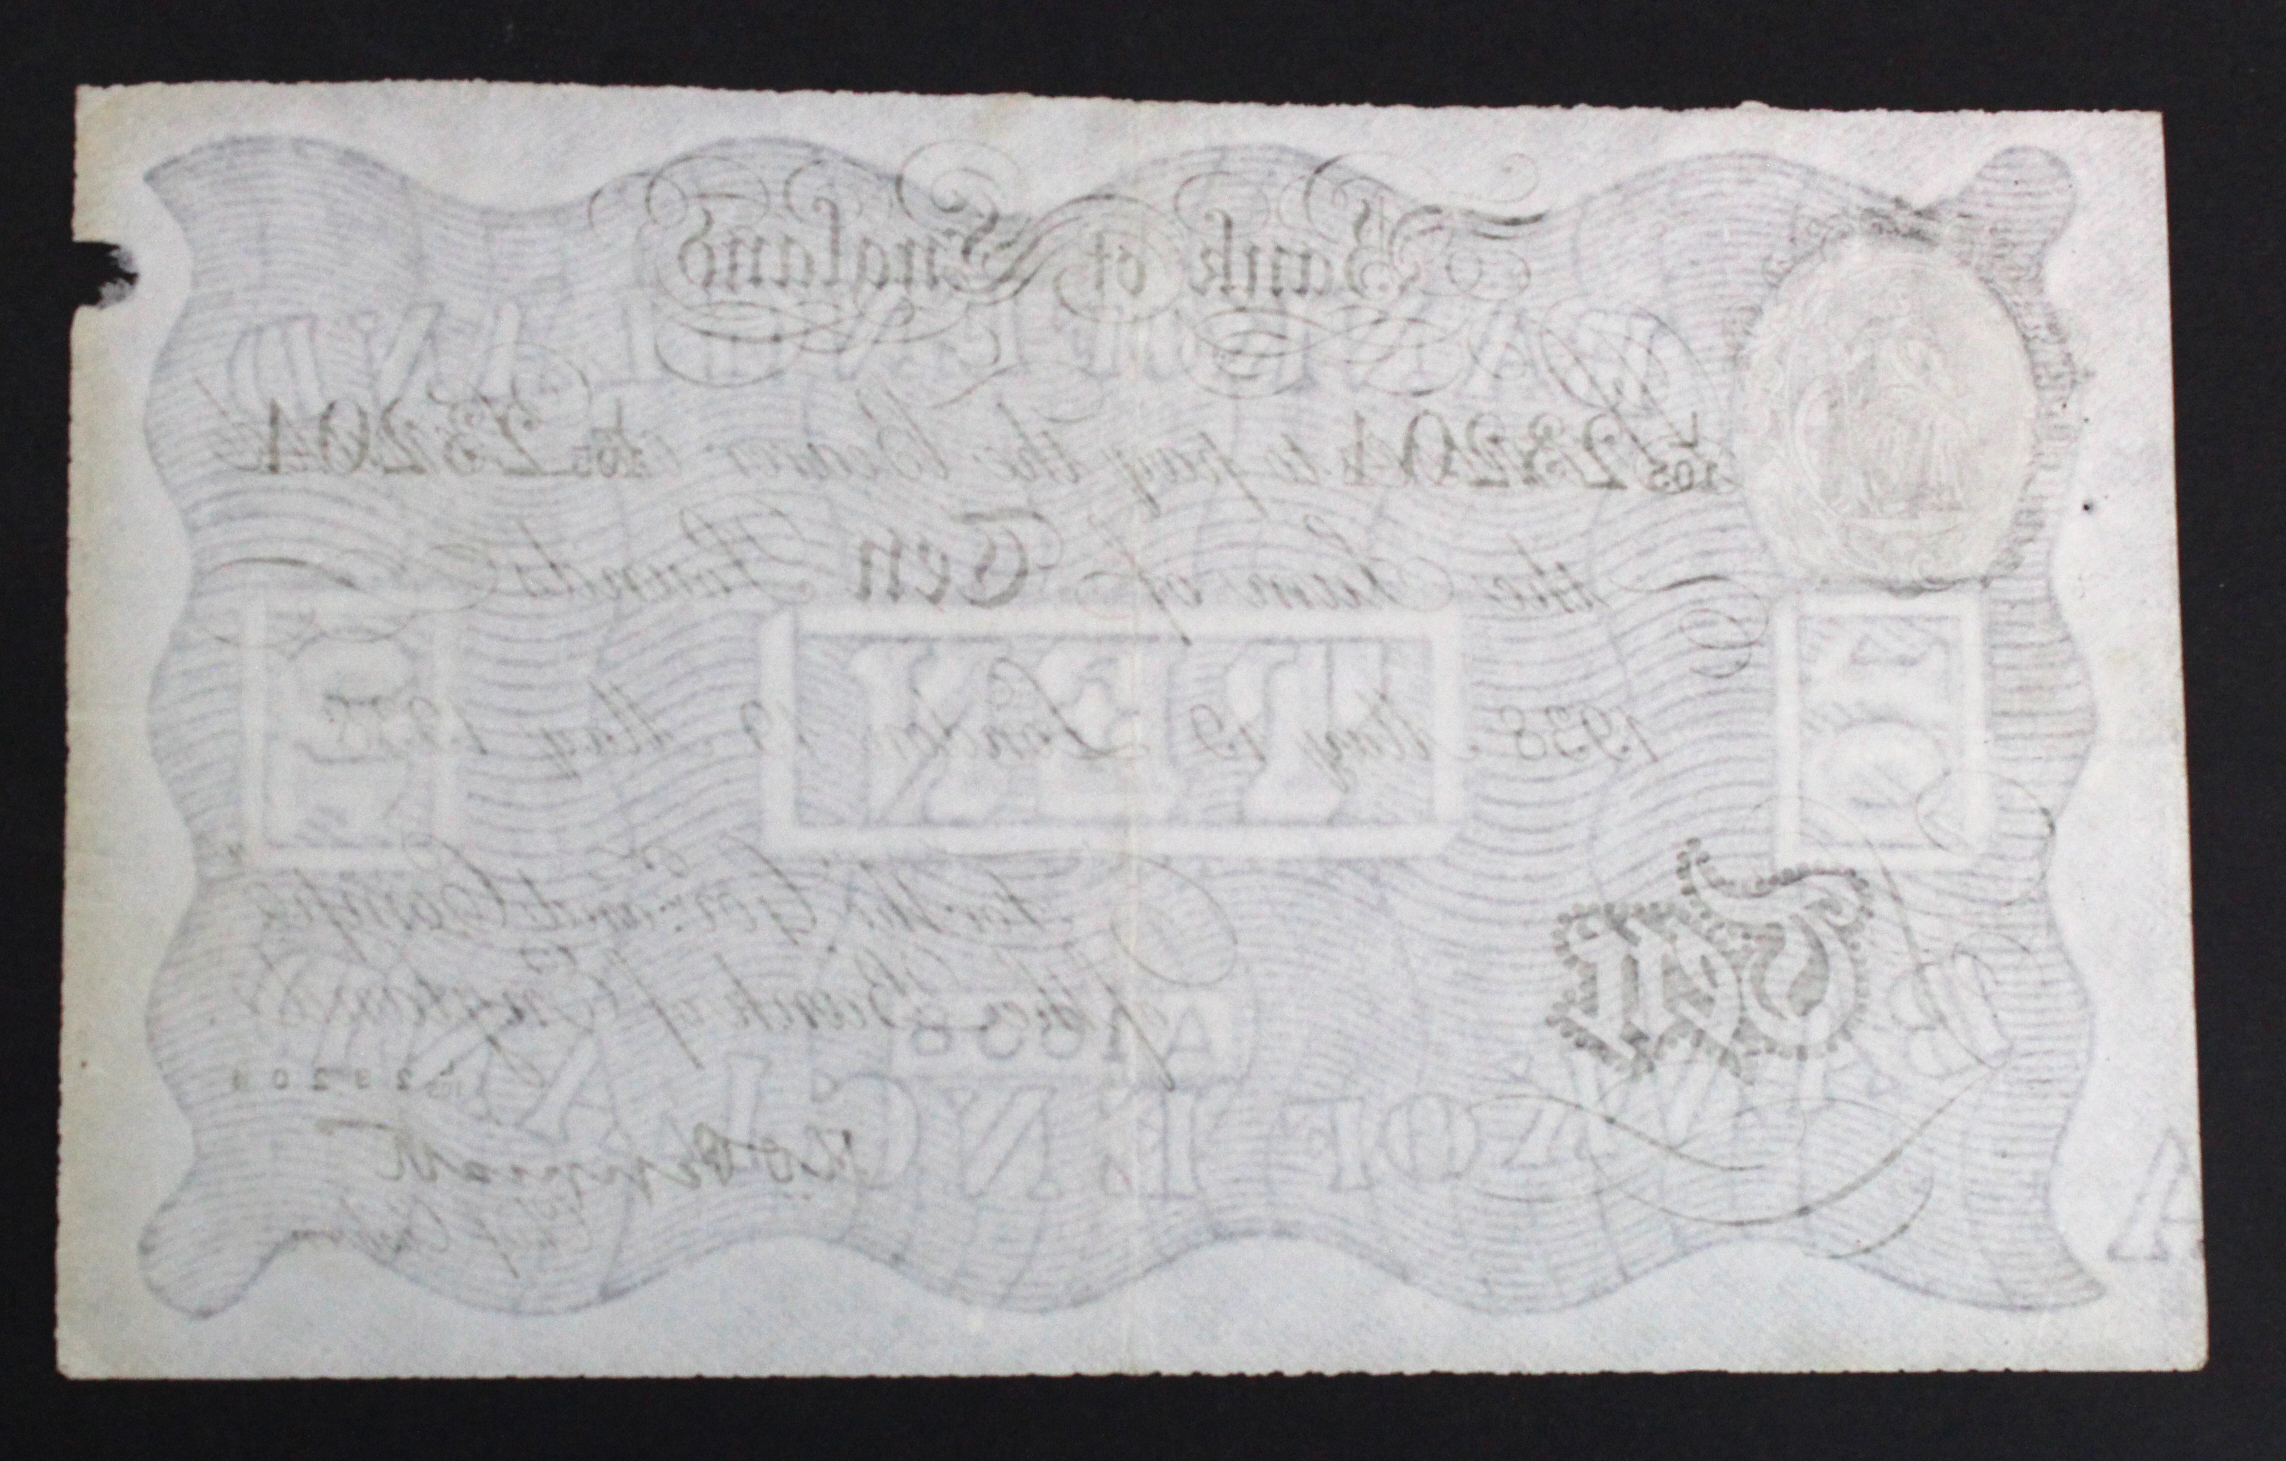 Peppiatt 10 Pounds BERNHARD note dated 19th May 1938, serial L/105 23204 (B242 for type) WW2 - Image 2 of 2